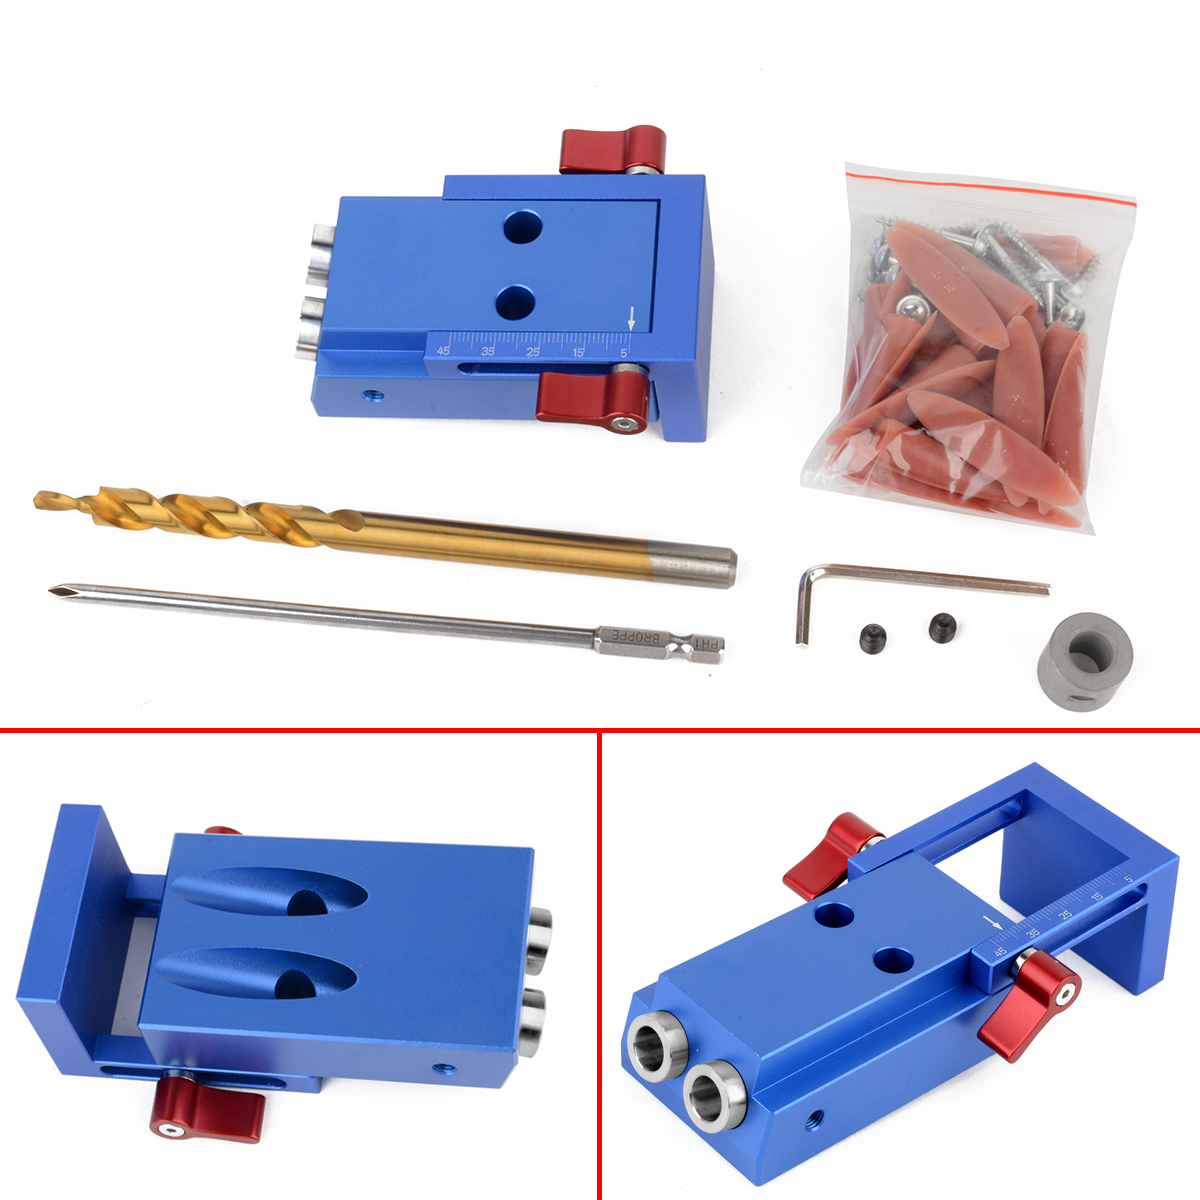 Mini Pocket Hole Drill Dowel Jig with Step Drilling Bit Woodworking Tool Kit For Powet Tool woodwork a step by step photographic guide to successful woodworking